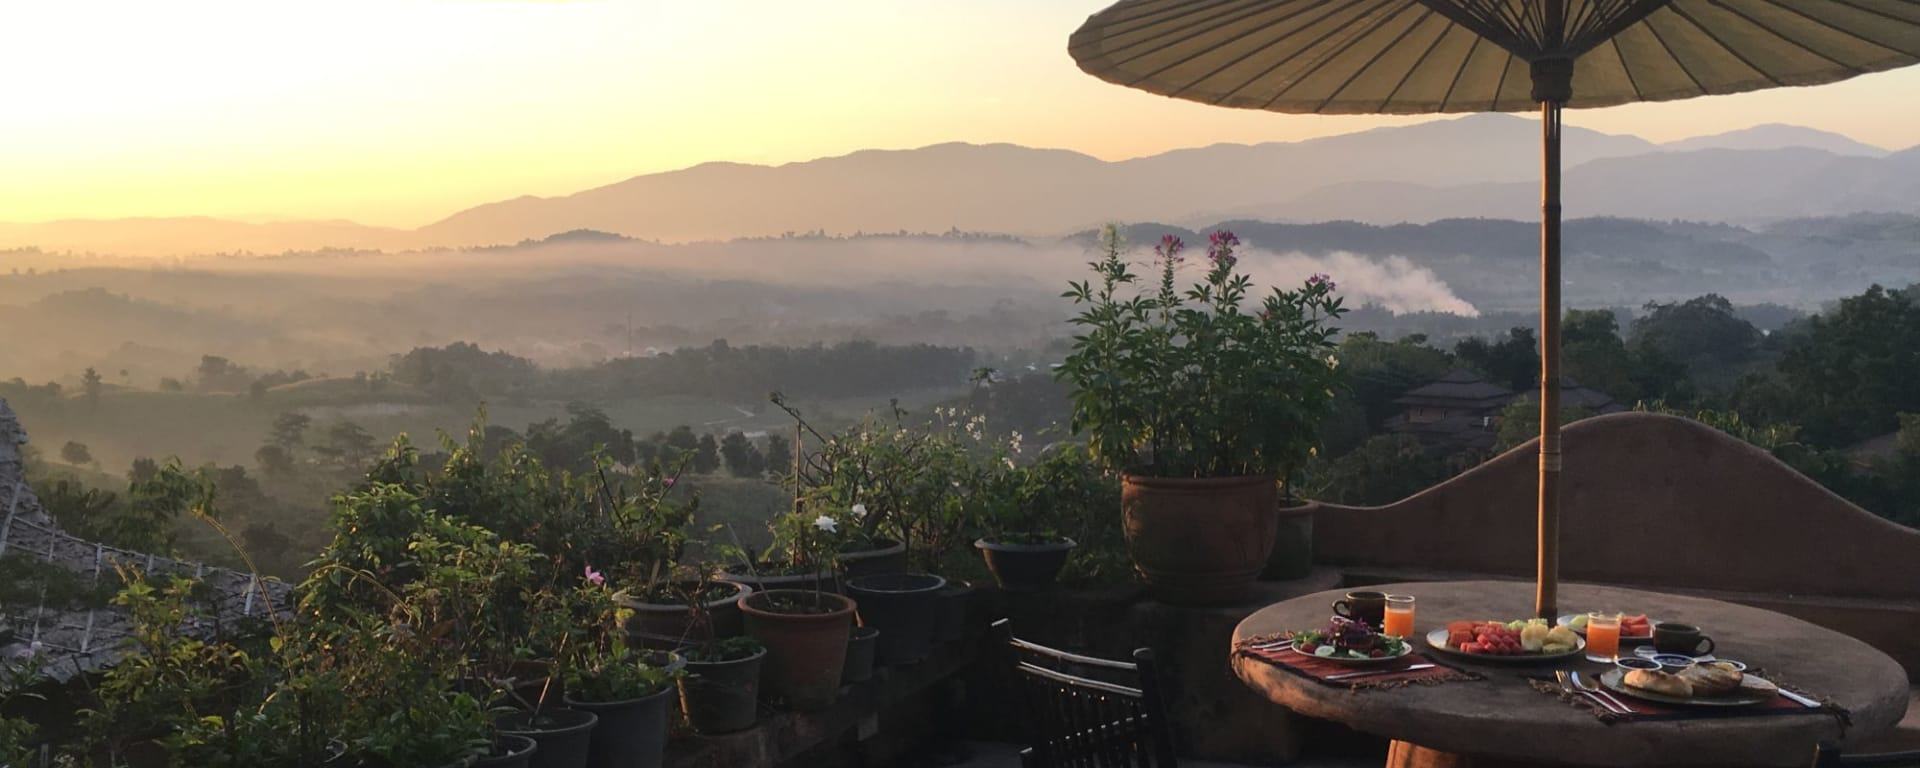 Phu Chaisai Mountain Resort à Mae Chan: Sunrise Breakfast